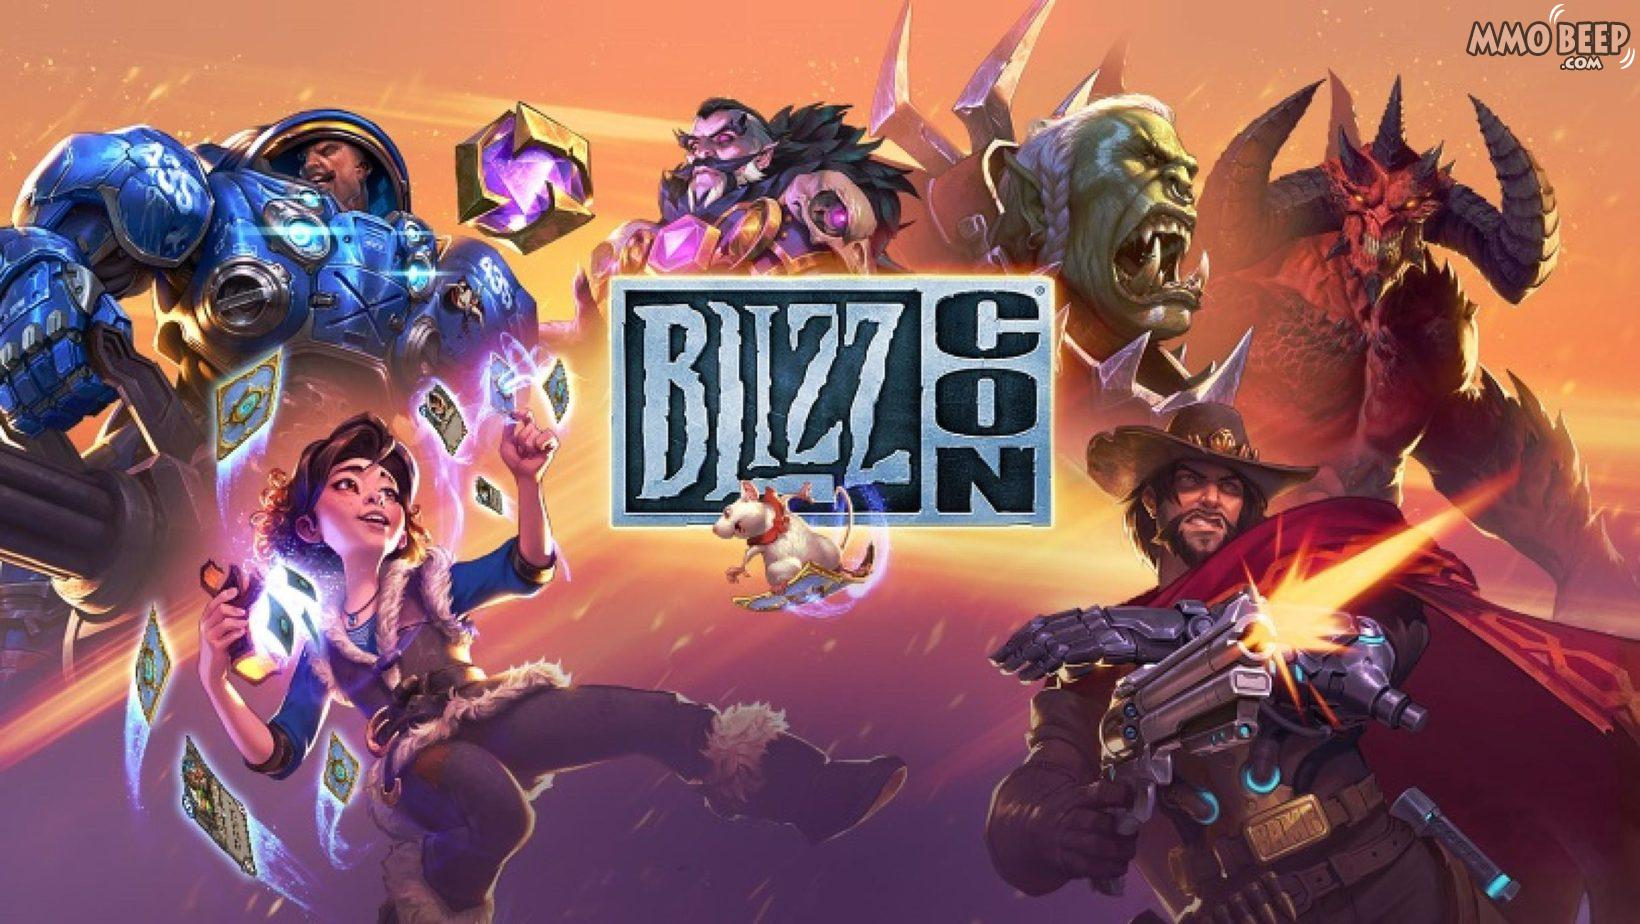 BlizzCon is not canceled for now